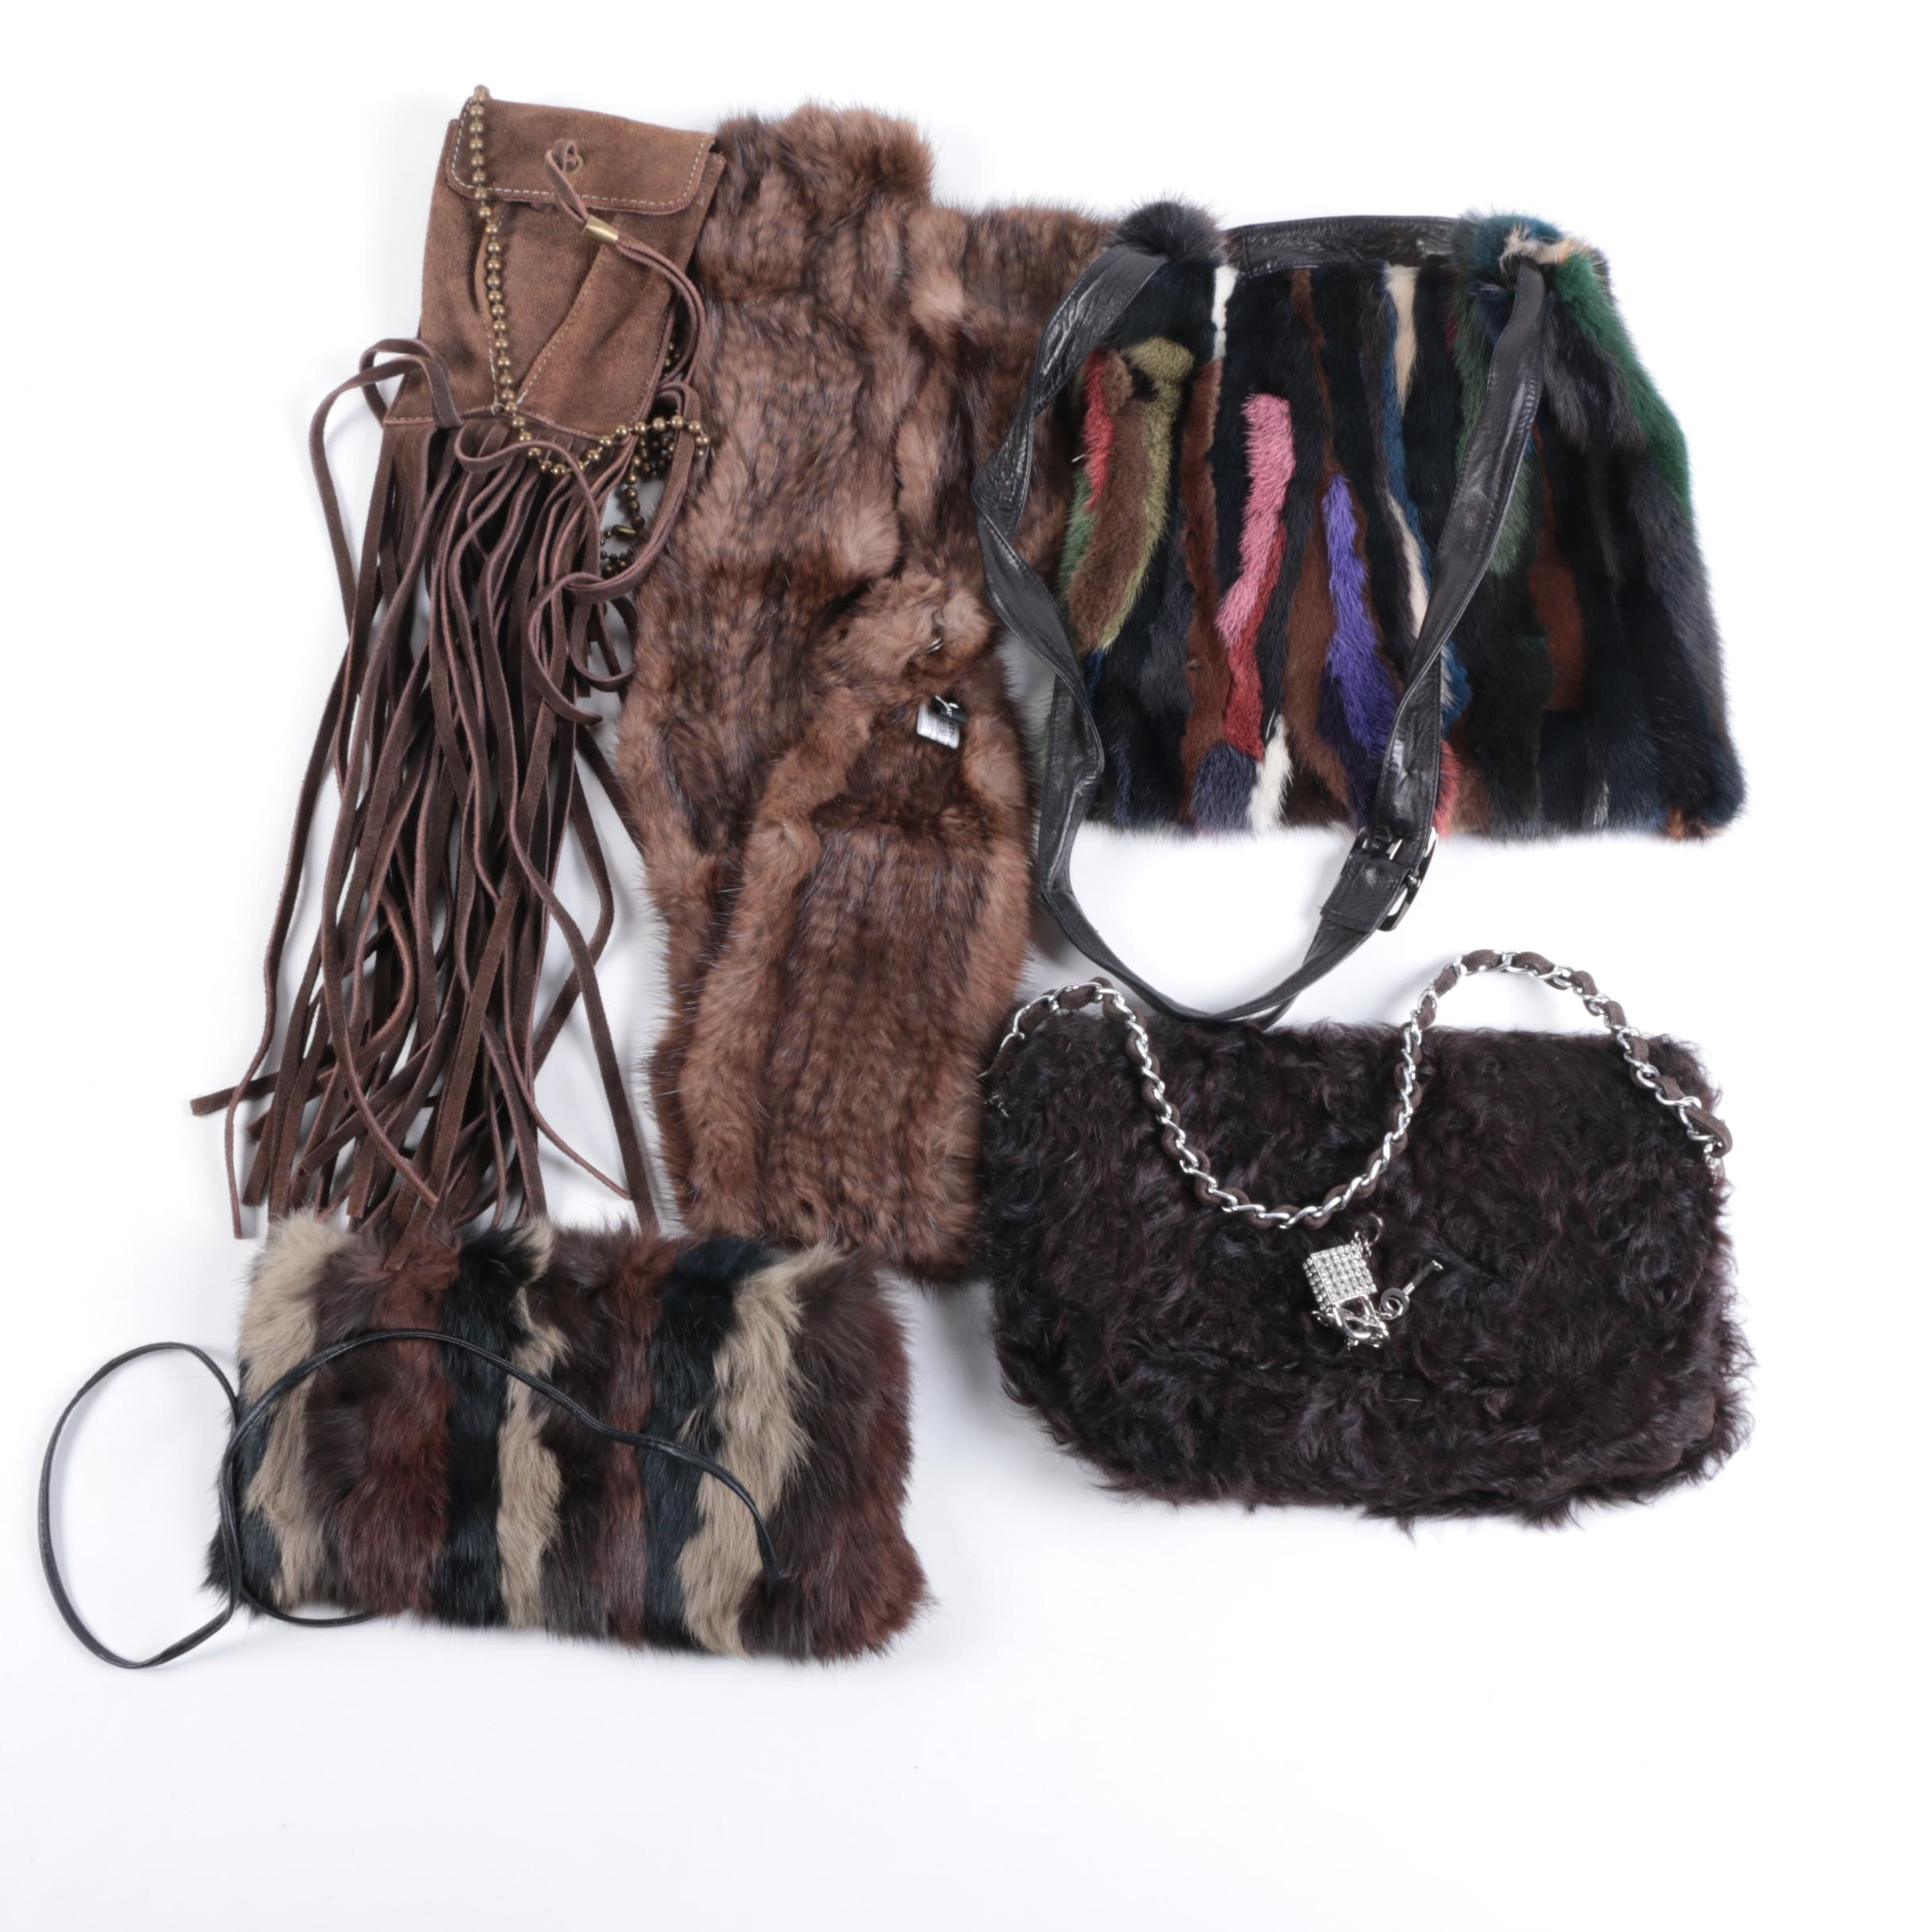 Fur and Suede Handbags and Accessories